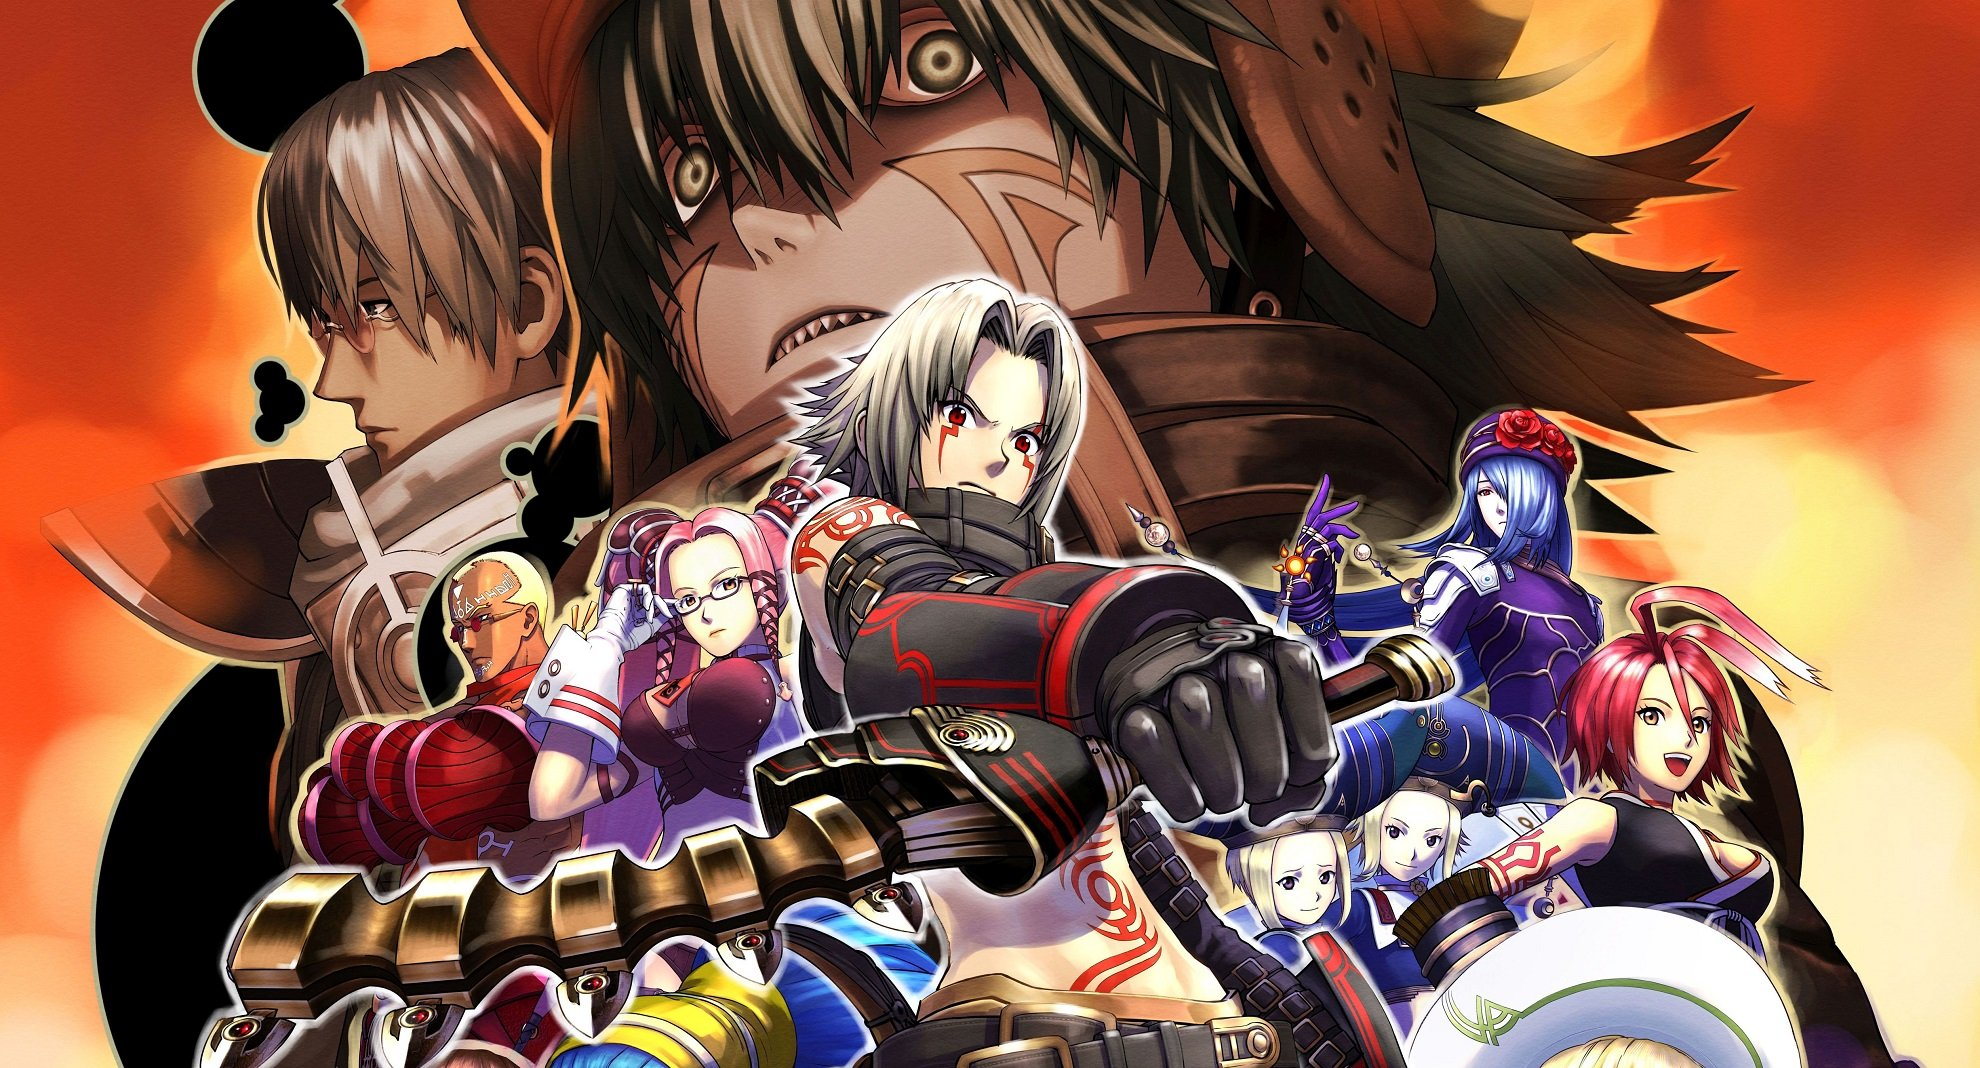 Looks like the .hack//G.U. remaster is going to be digital only screenshot